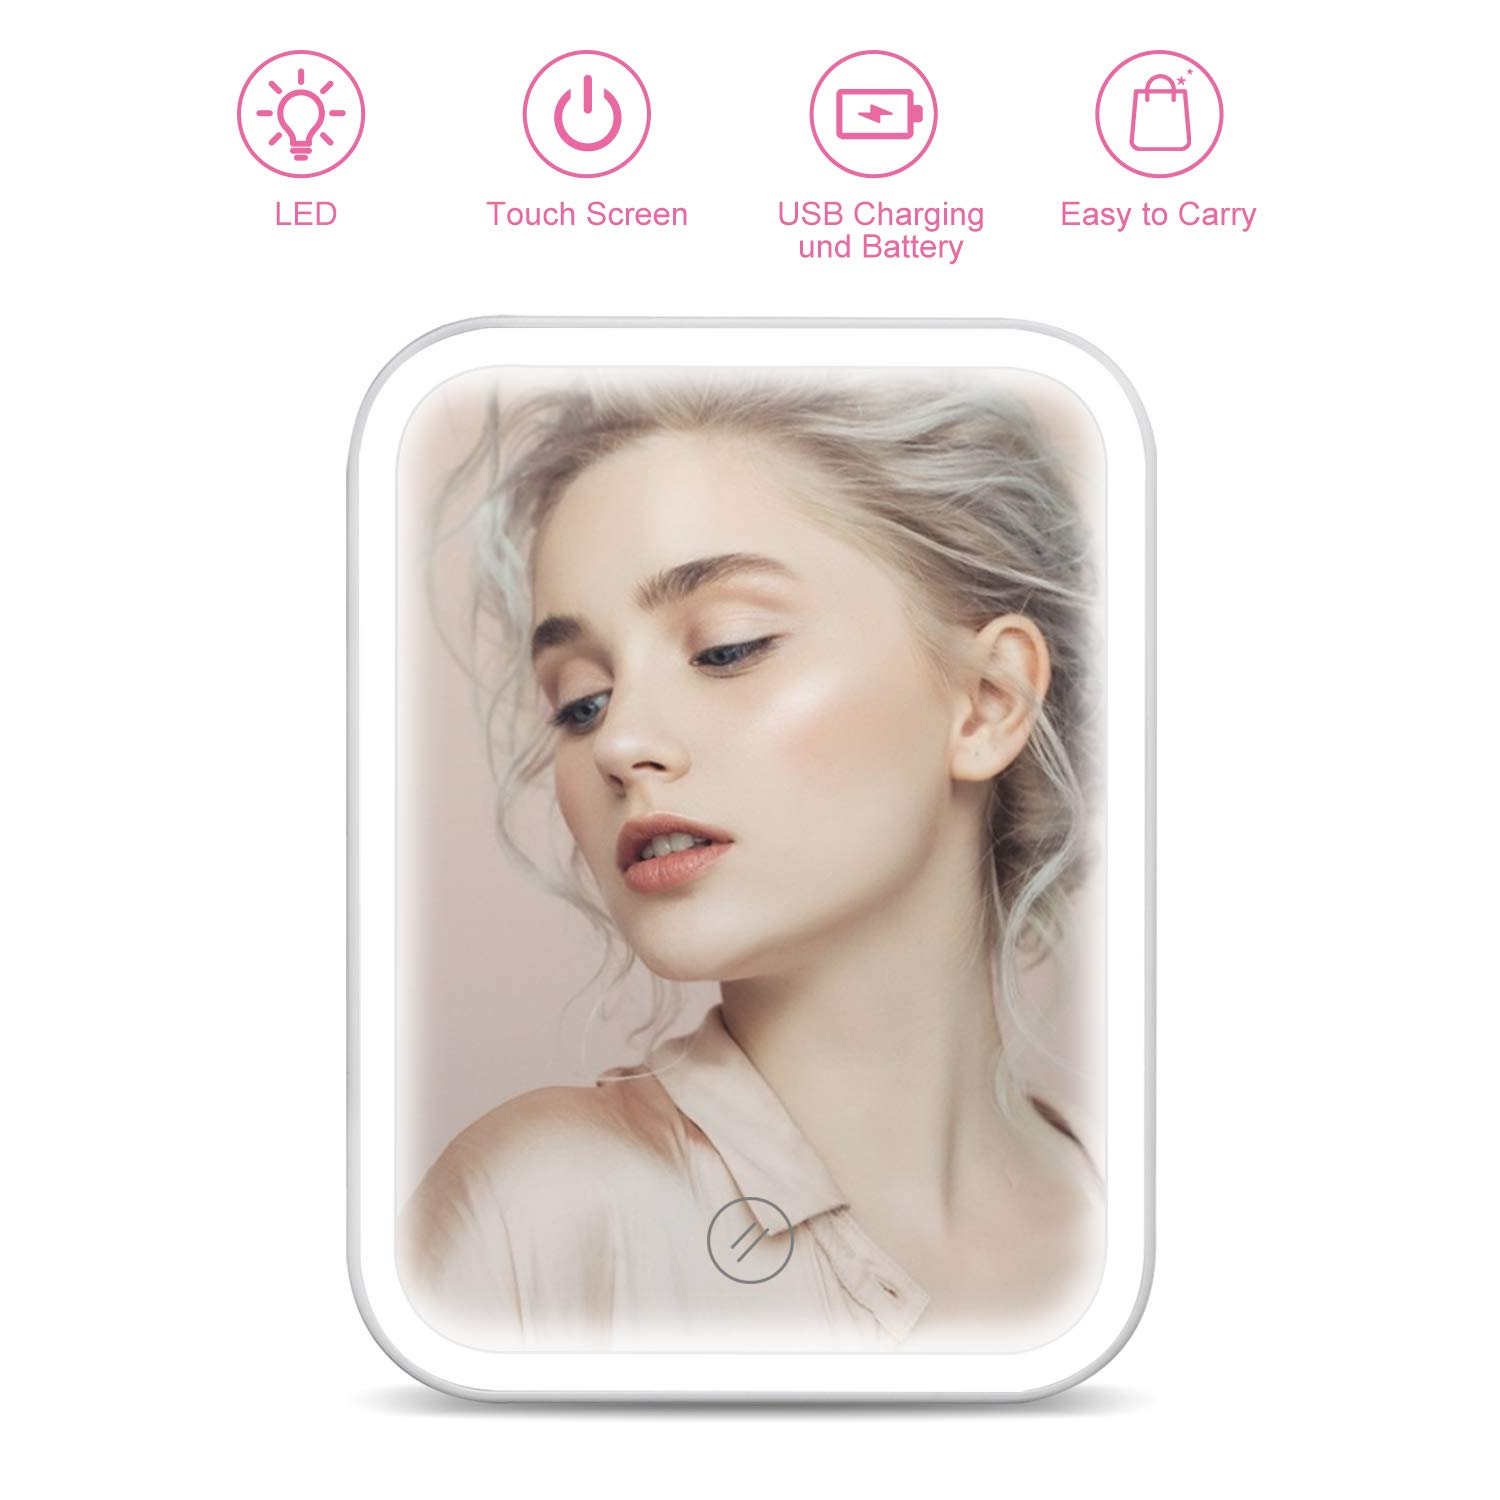 Makeup Mirror with Lights, HOCOSY Travel Vanity Mirror with Lights, Touch Screen Switch, Dual Power Supply, Portable Tabletop Illuminated Cosmetic Mirror with Light, White